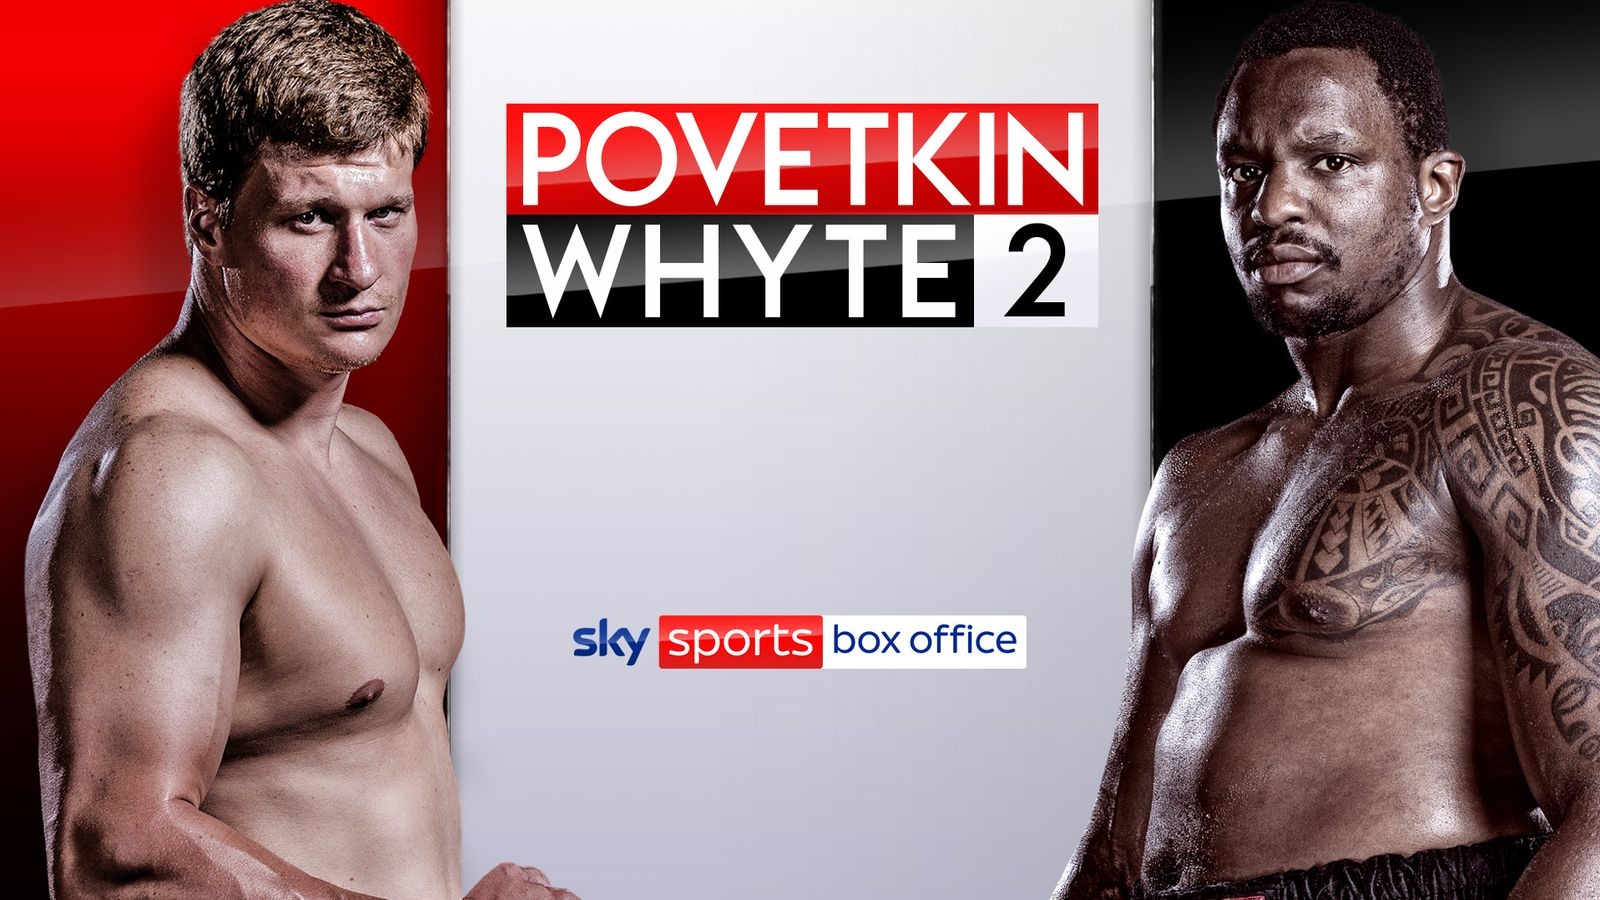 Povetkin vs Whyte 2: How to book and watch Povetkin vs Whyte 2 if you are not a Sky TV subscriber